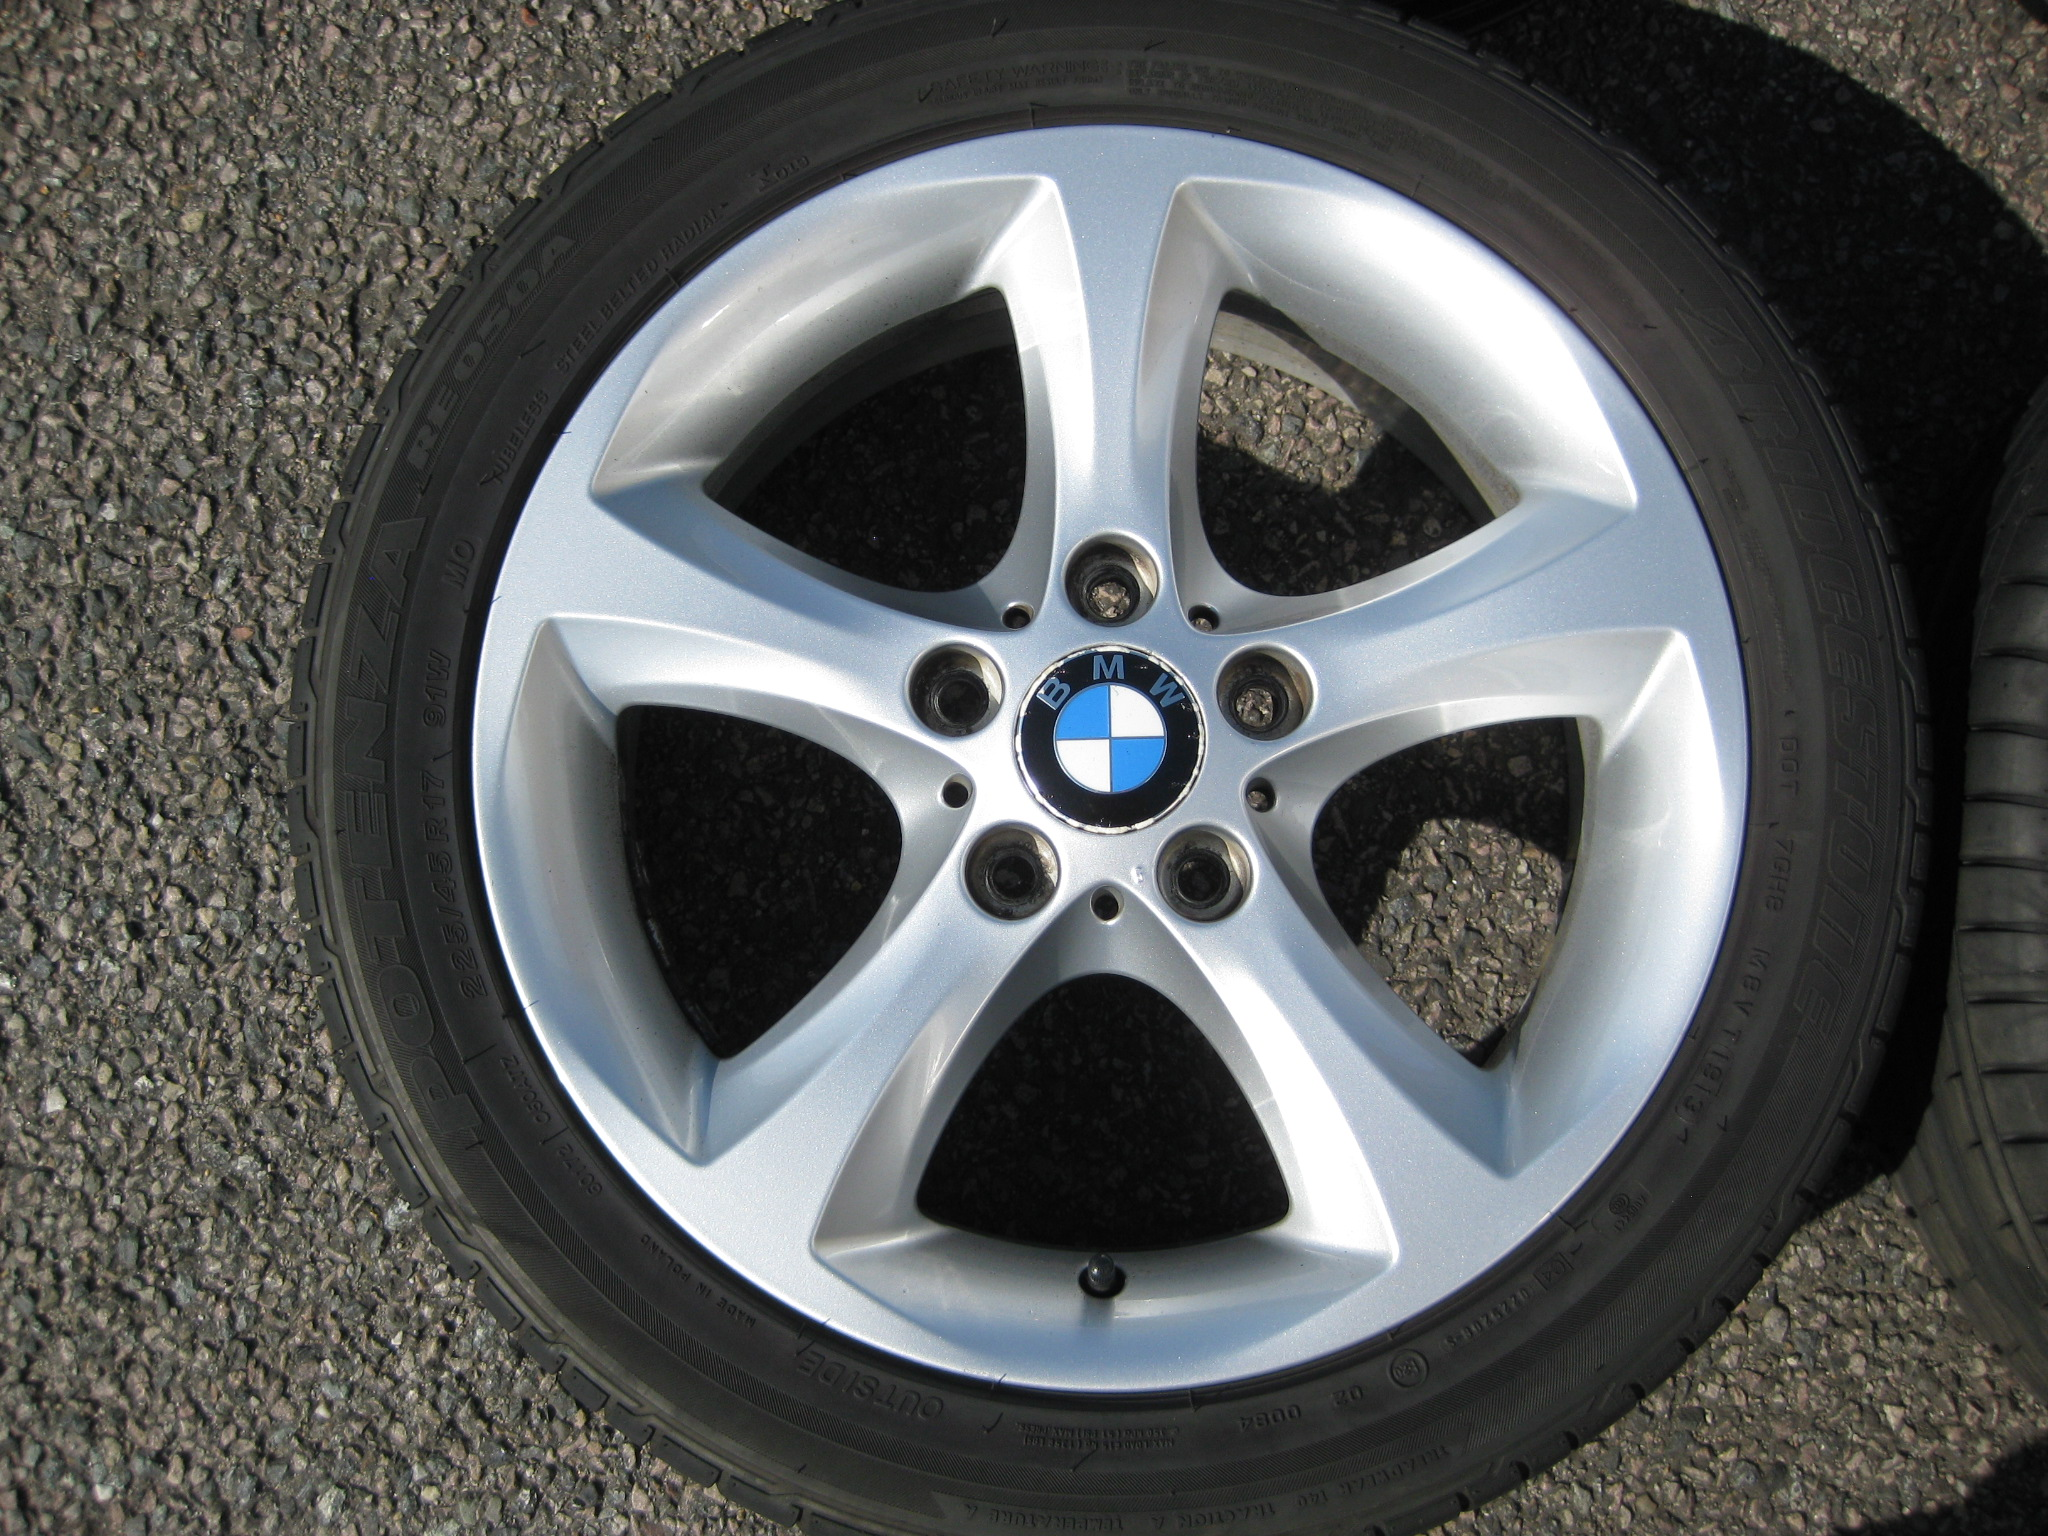 "USED 17"" GENUINE STYLE 256 1 SERIES 5 SPOKE ALLOY WHEELS,VGC INC GOOD NON RUNFLAT TYRES"